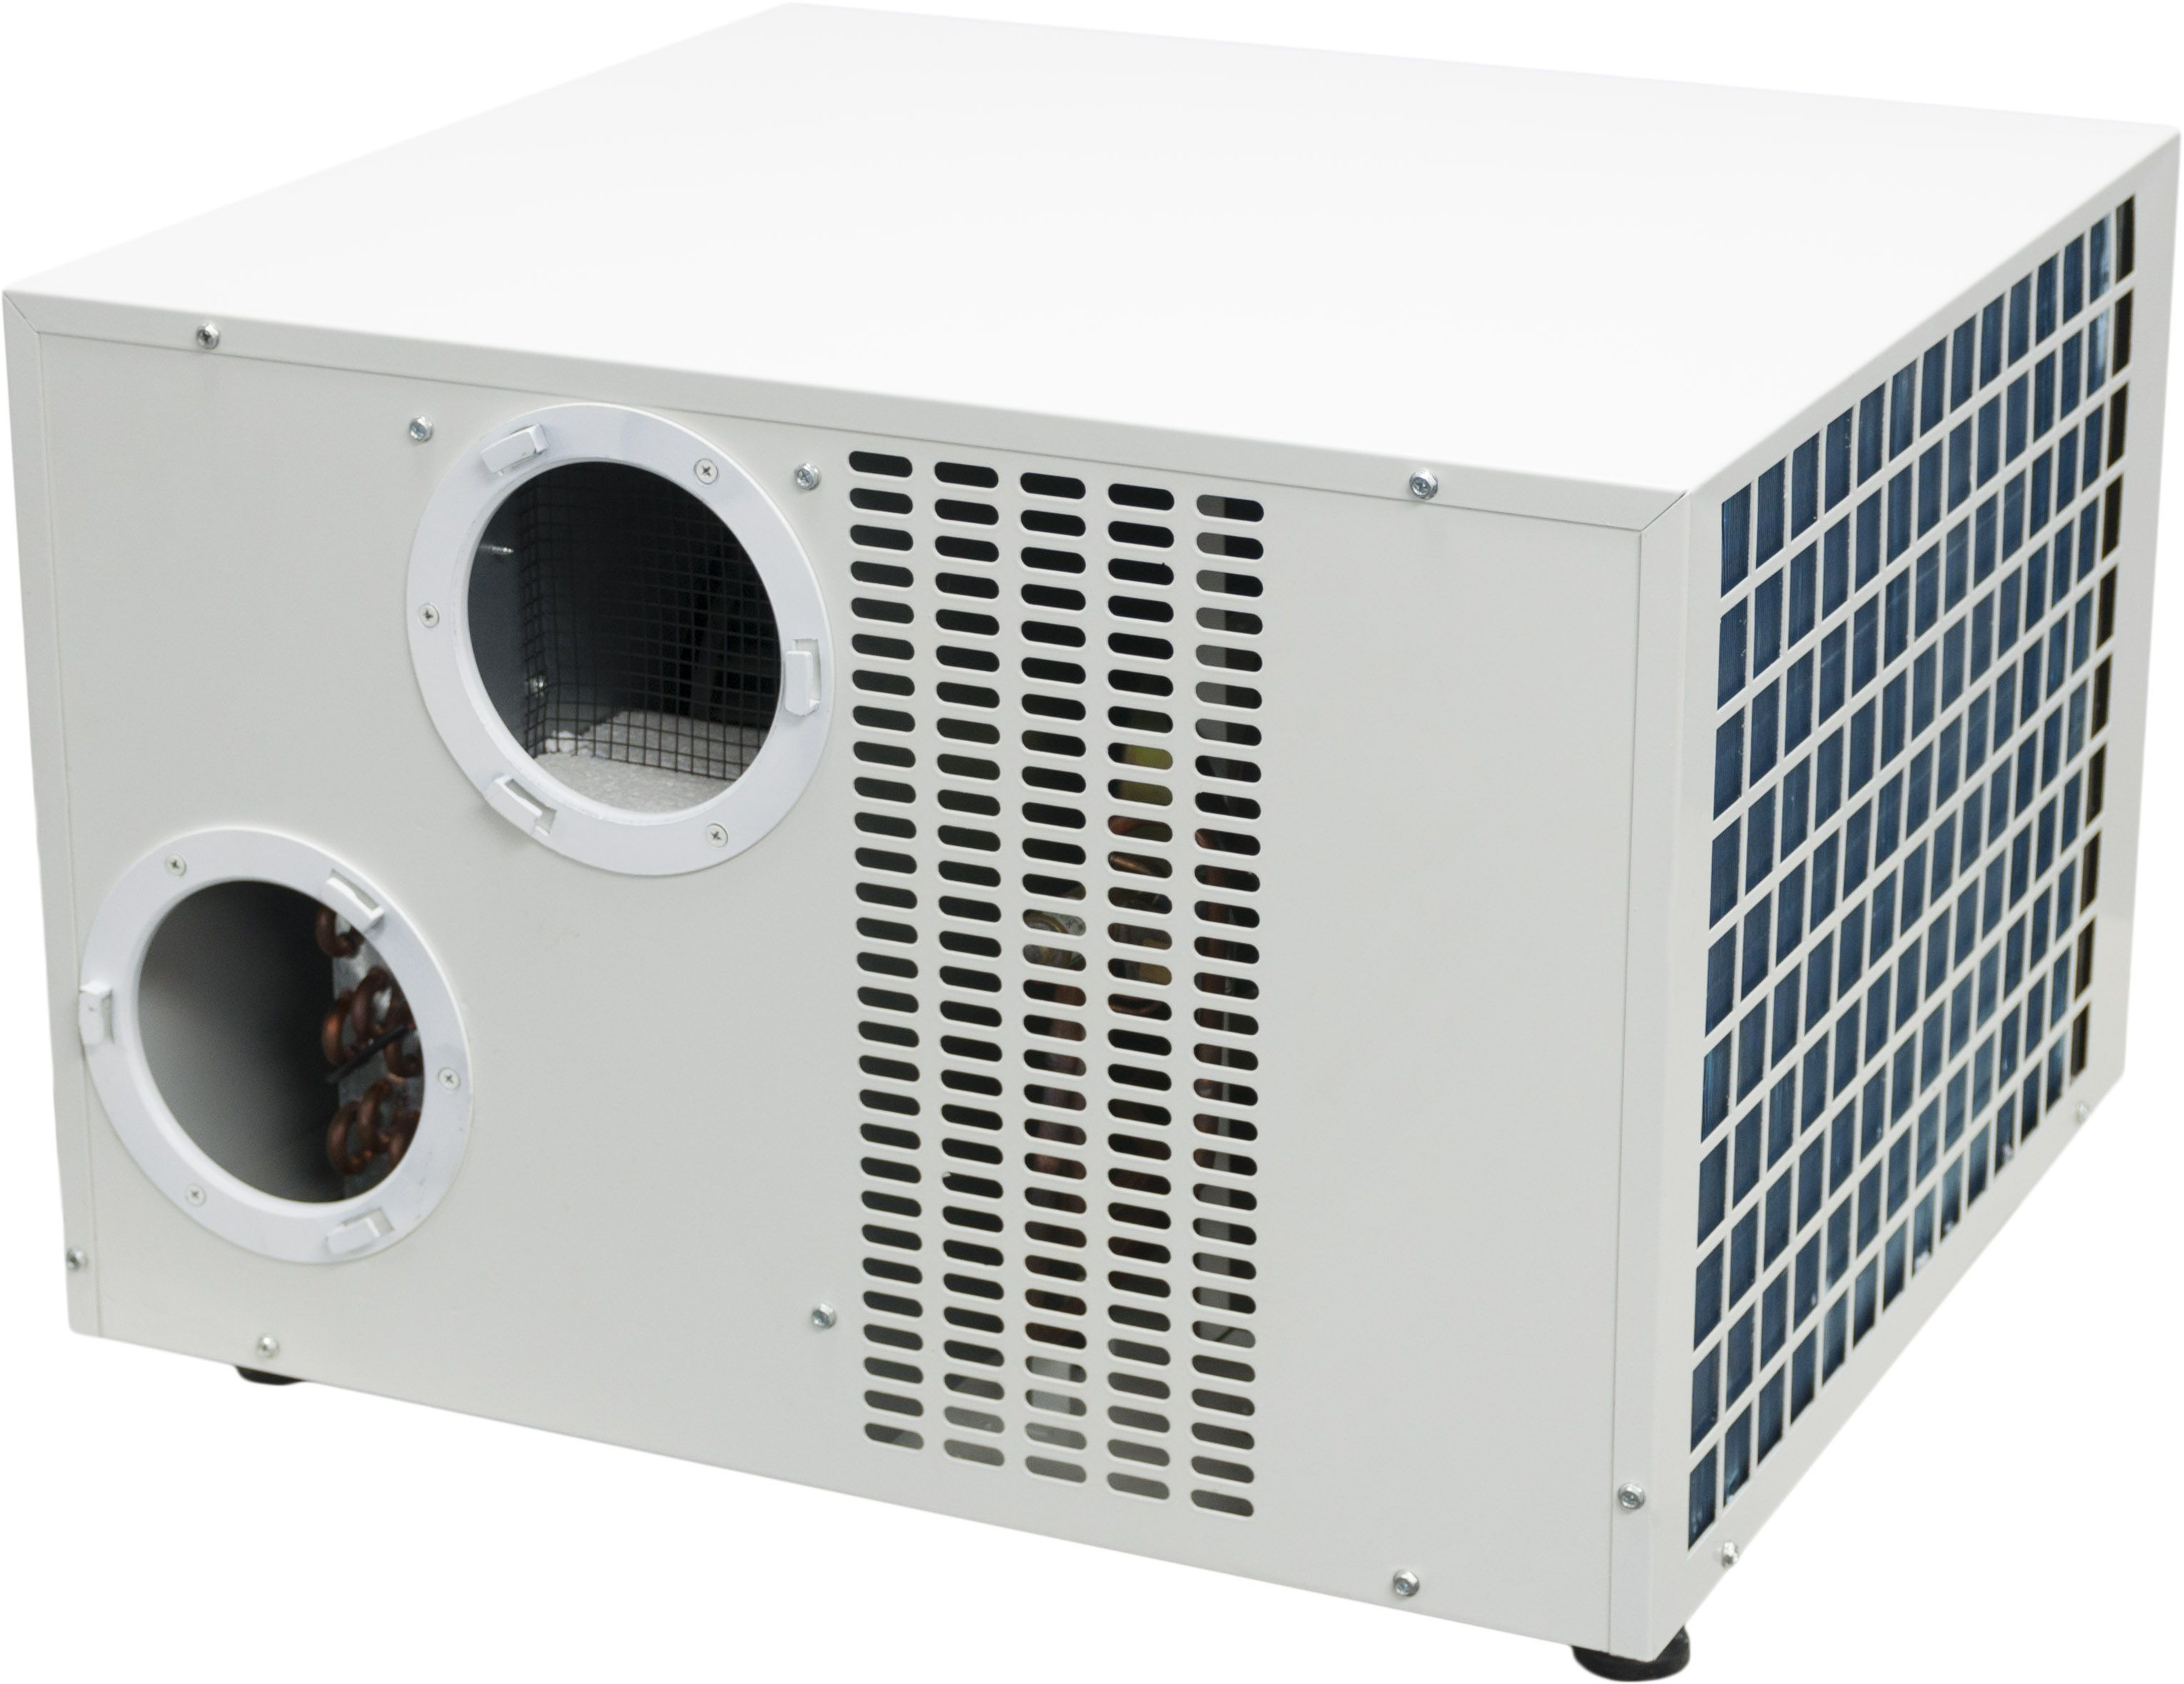 Climateright Cr10000ach 10 000 Btu Portable Air